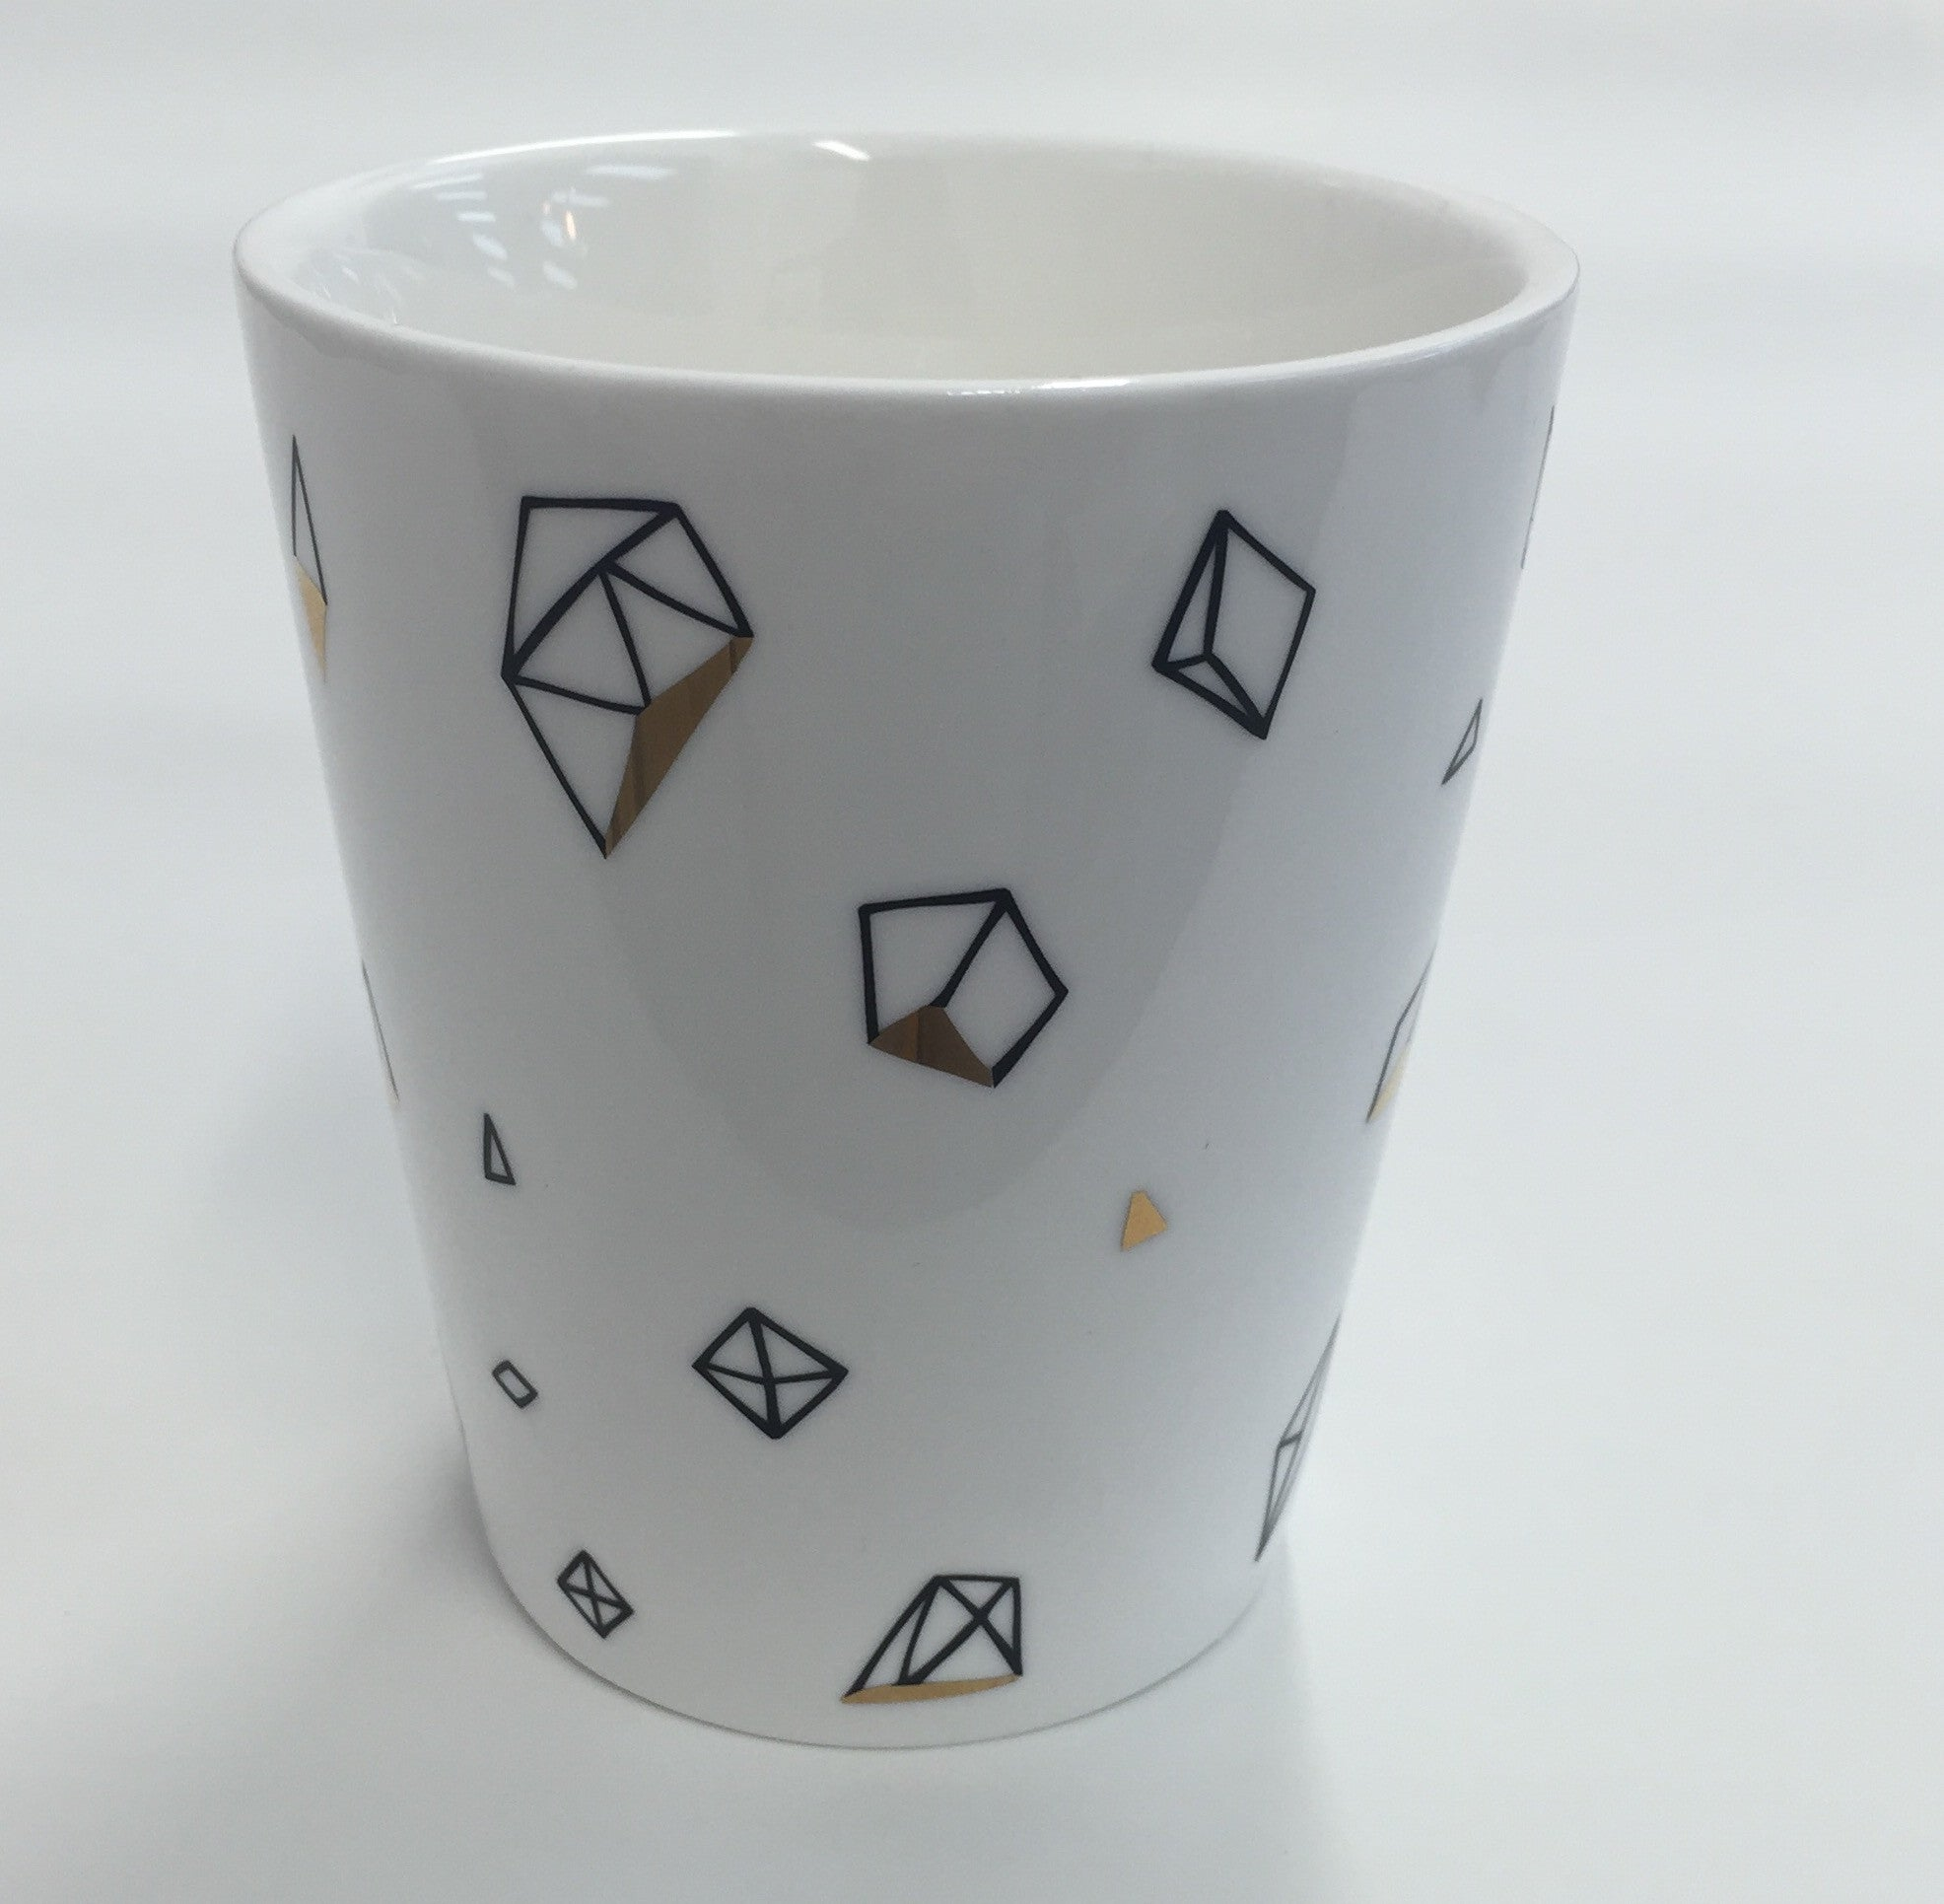 GEORGE & CO Geometric Vessel